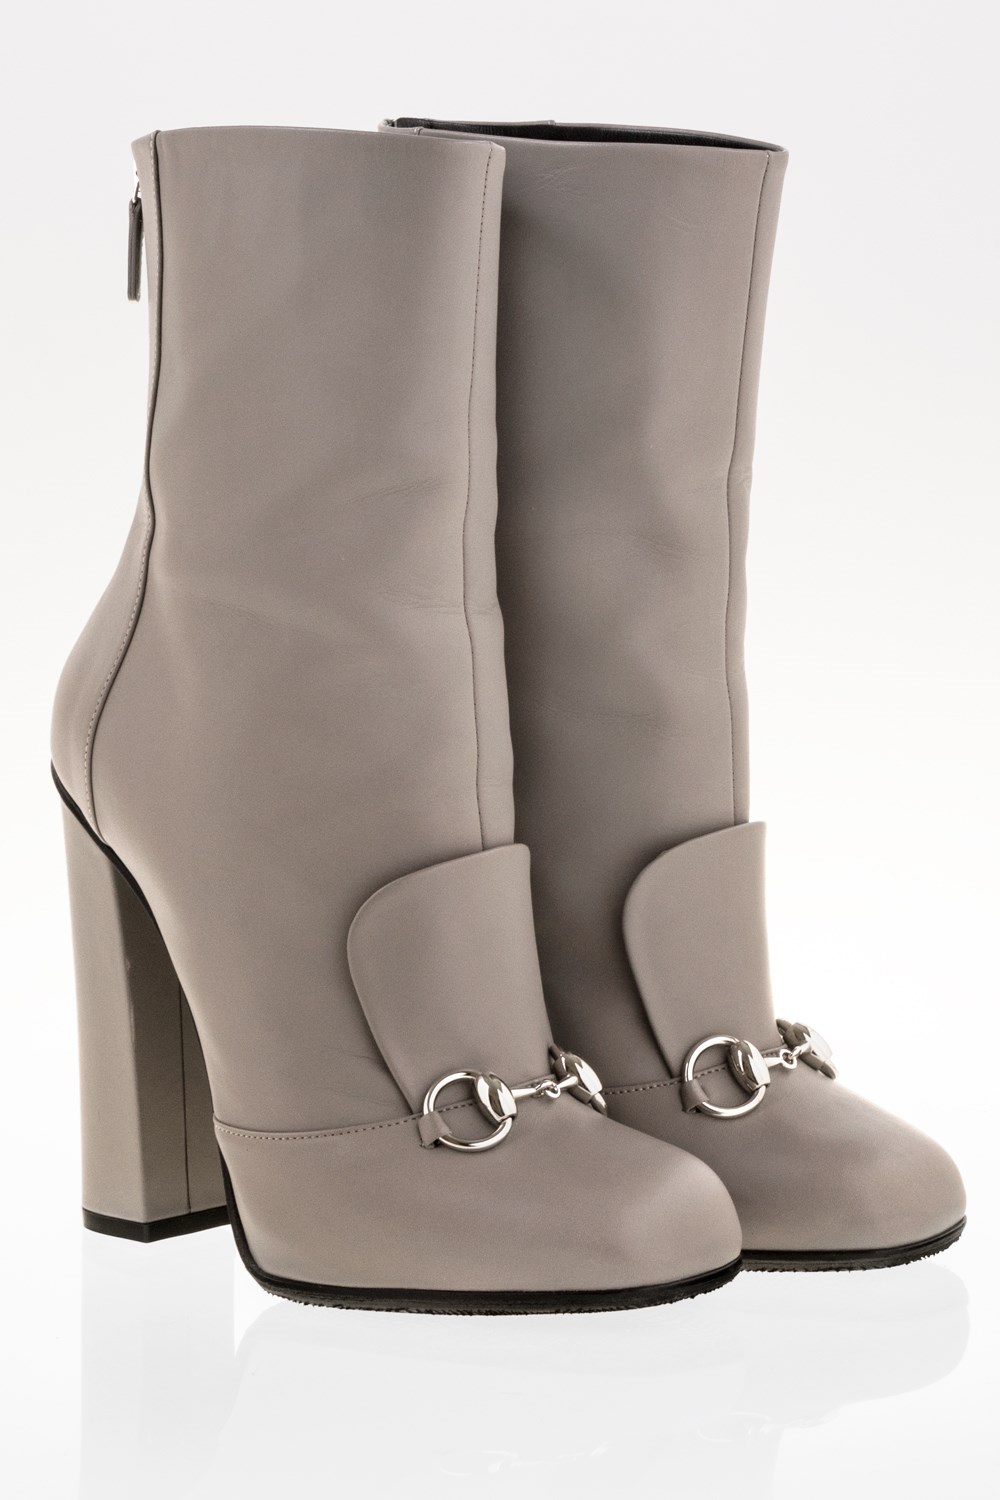 785417c3a08e Grey Lillian Horsebit Leather Ankle Boots   Size  39 - Fit  True to ...